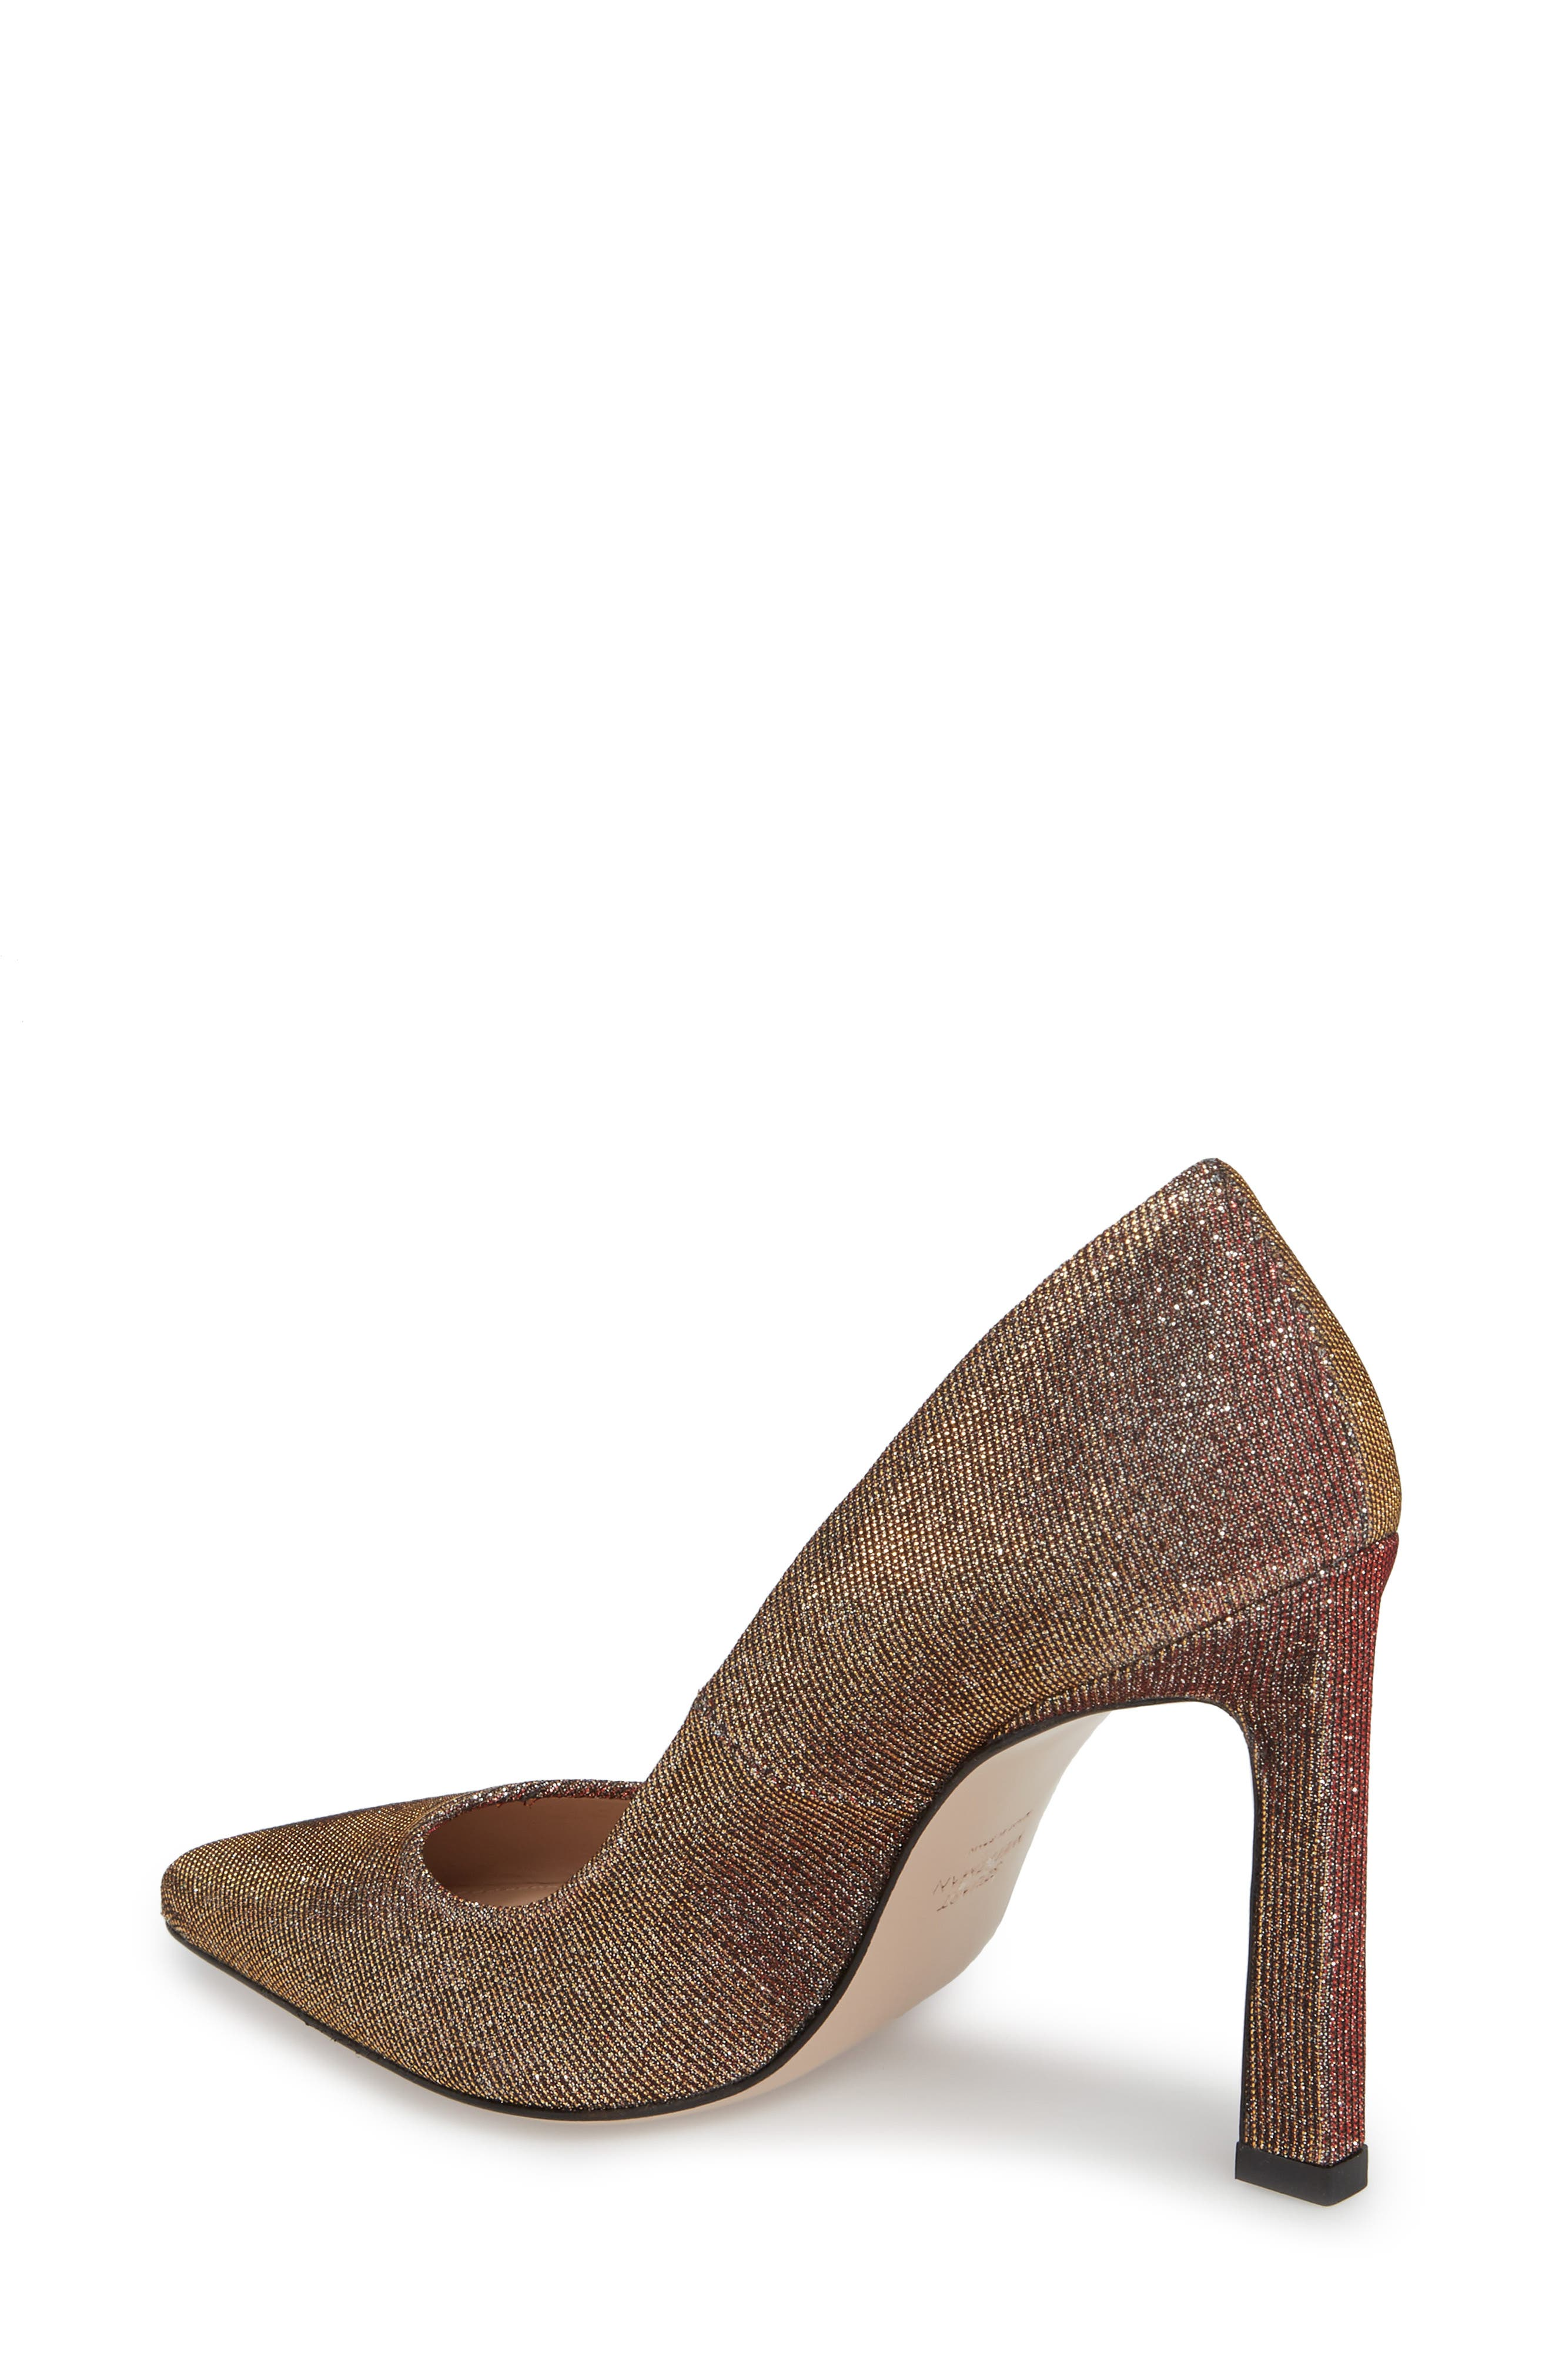 Chicster Pointy Toe Pump,                             Alternate thumbnail 2, color,                             Bronze Nighttime